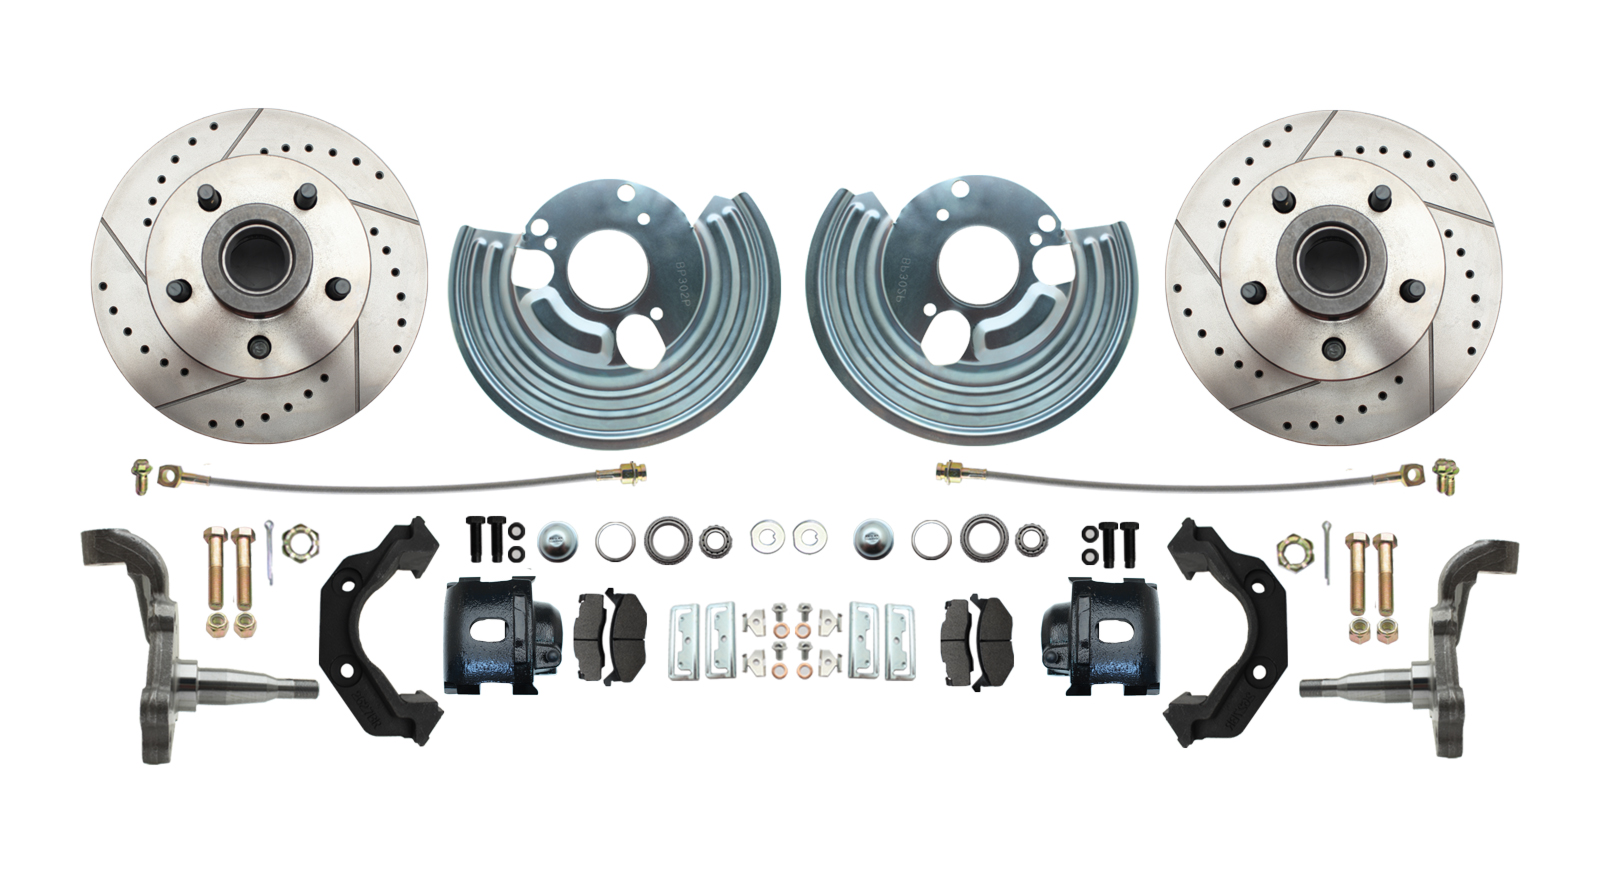 DBK6272LXB - 1962-1972 Mopar B&E Body High Performance Disc Brake Conversion Kit W/ Powder Coated Black Calipers